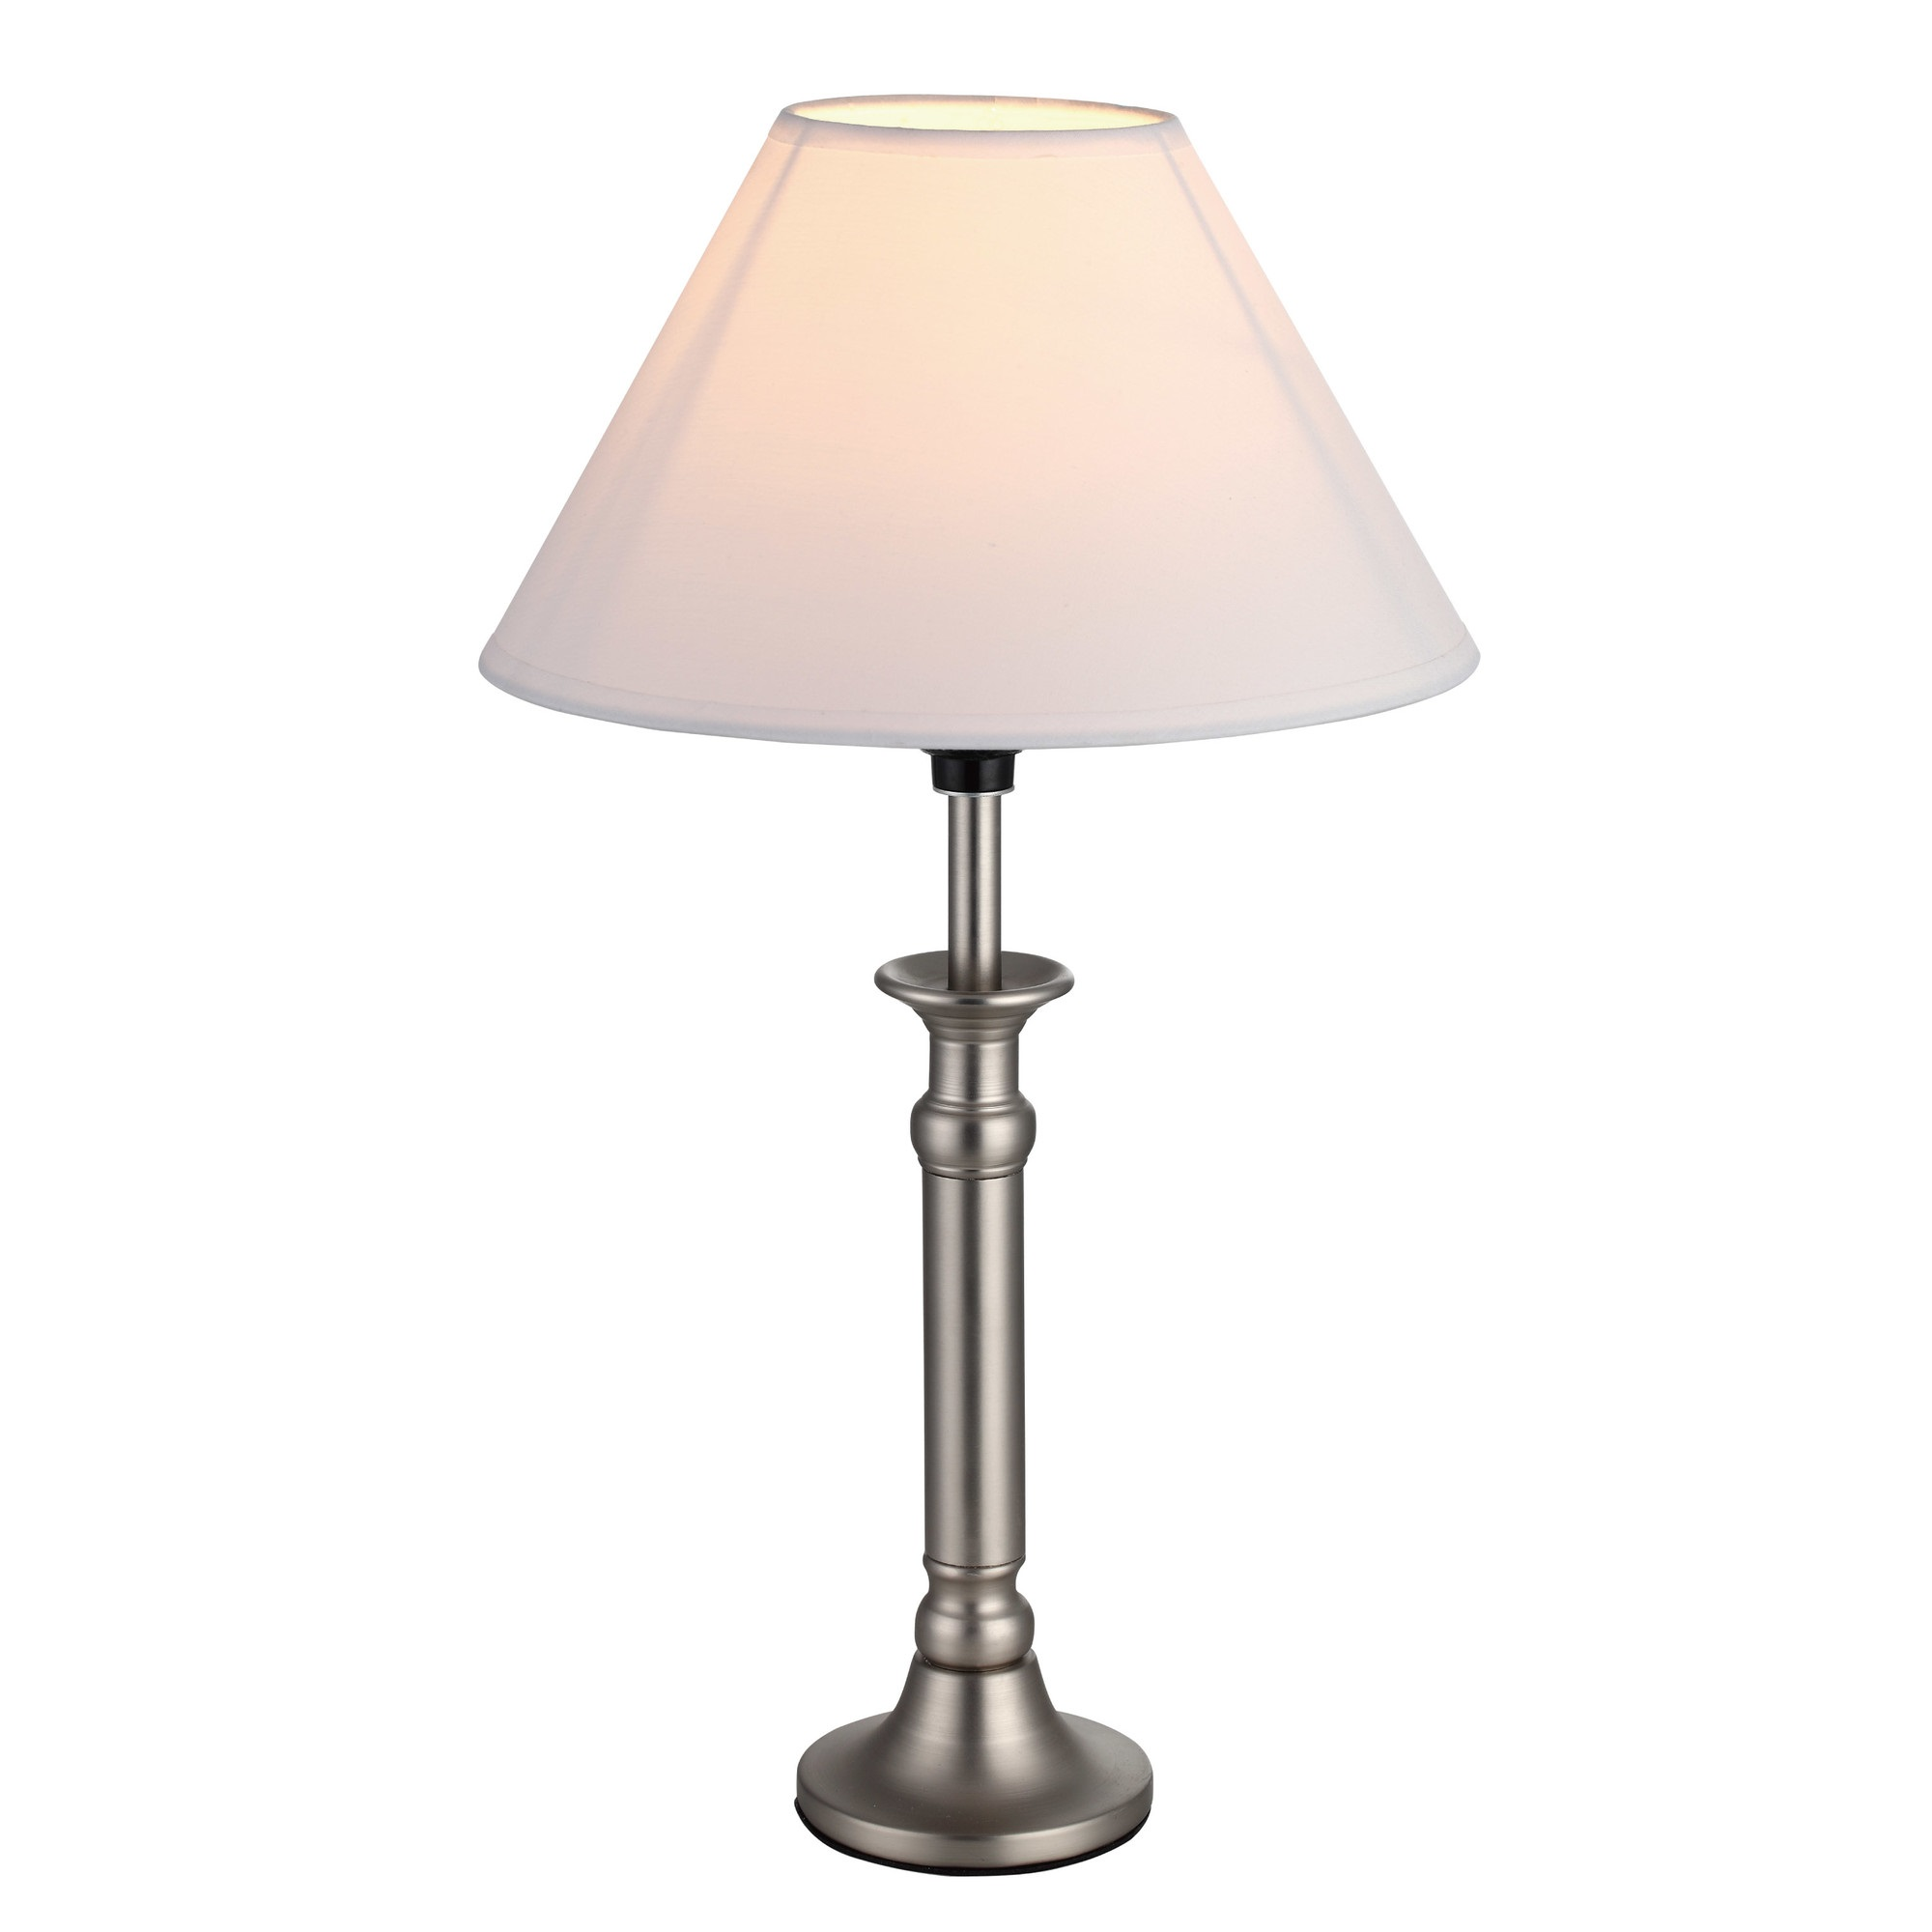 Andover mills table lamp with shade kvn225ddp l brilliant for Images of table lamps